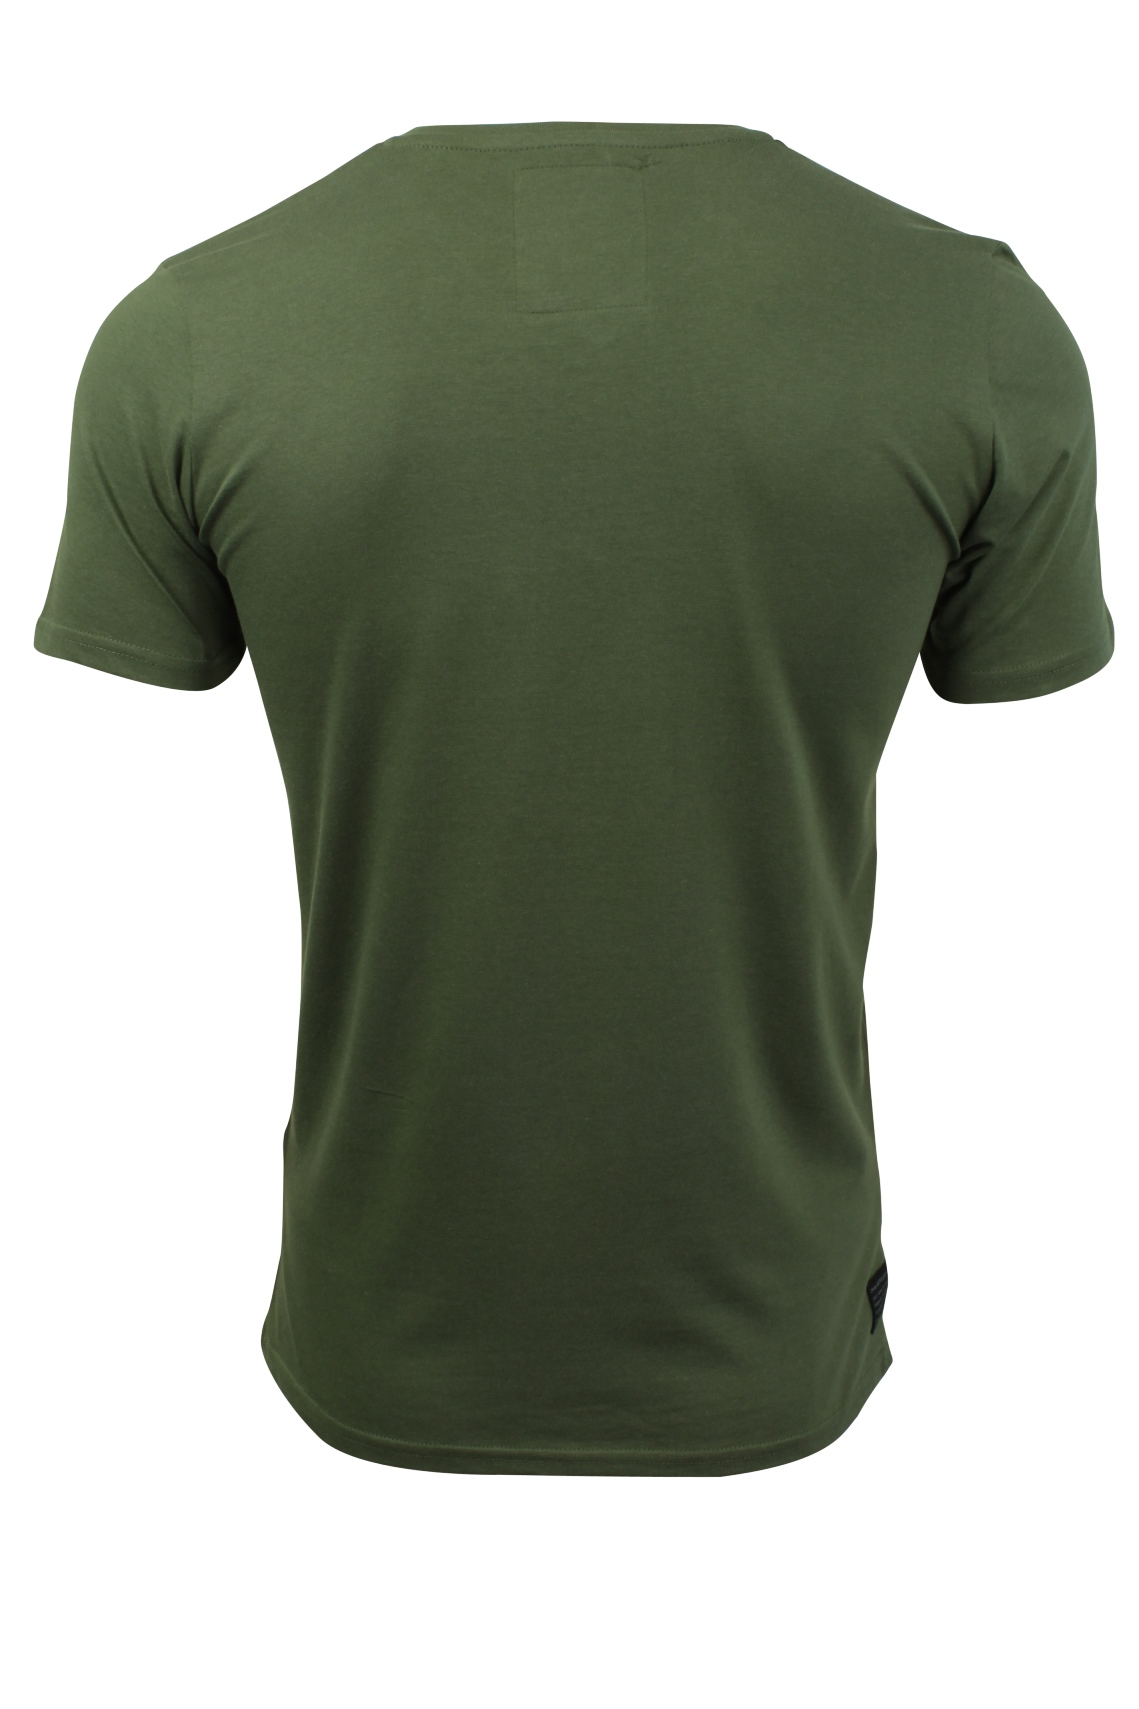 Mens-T-Shirt-by-Dissident-Short-Sleeved